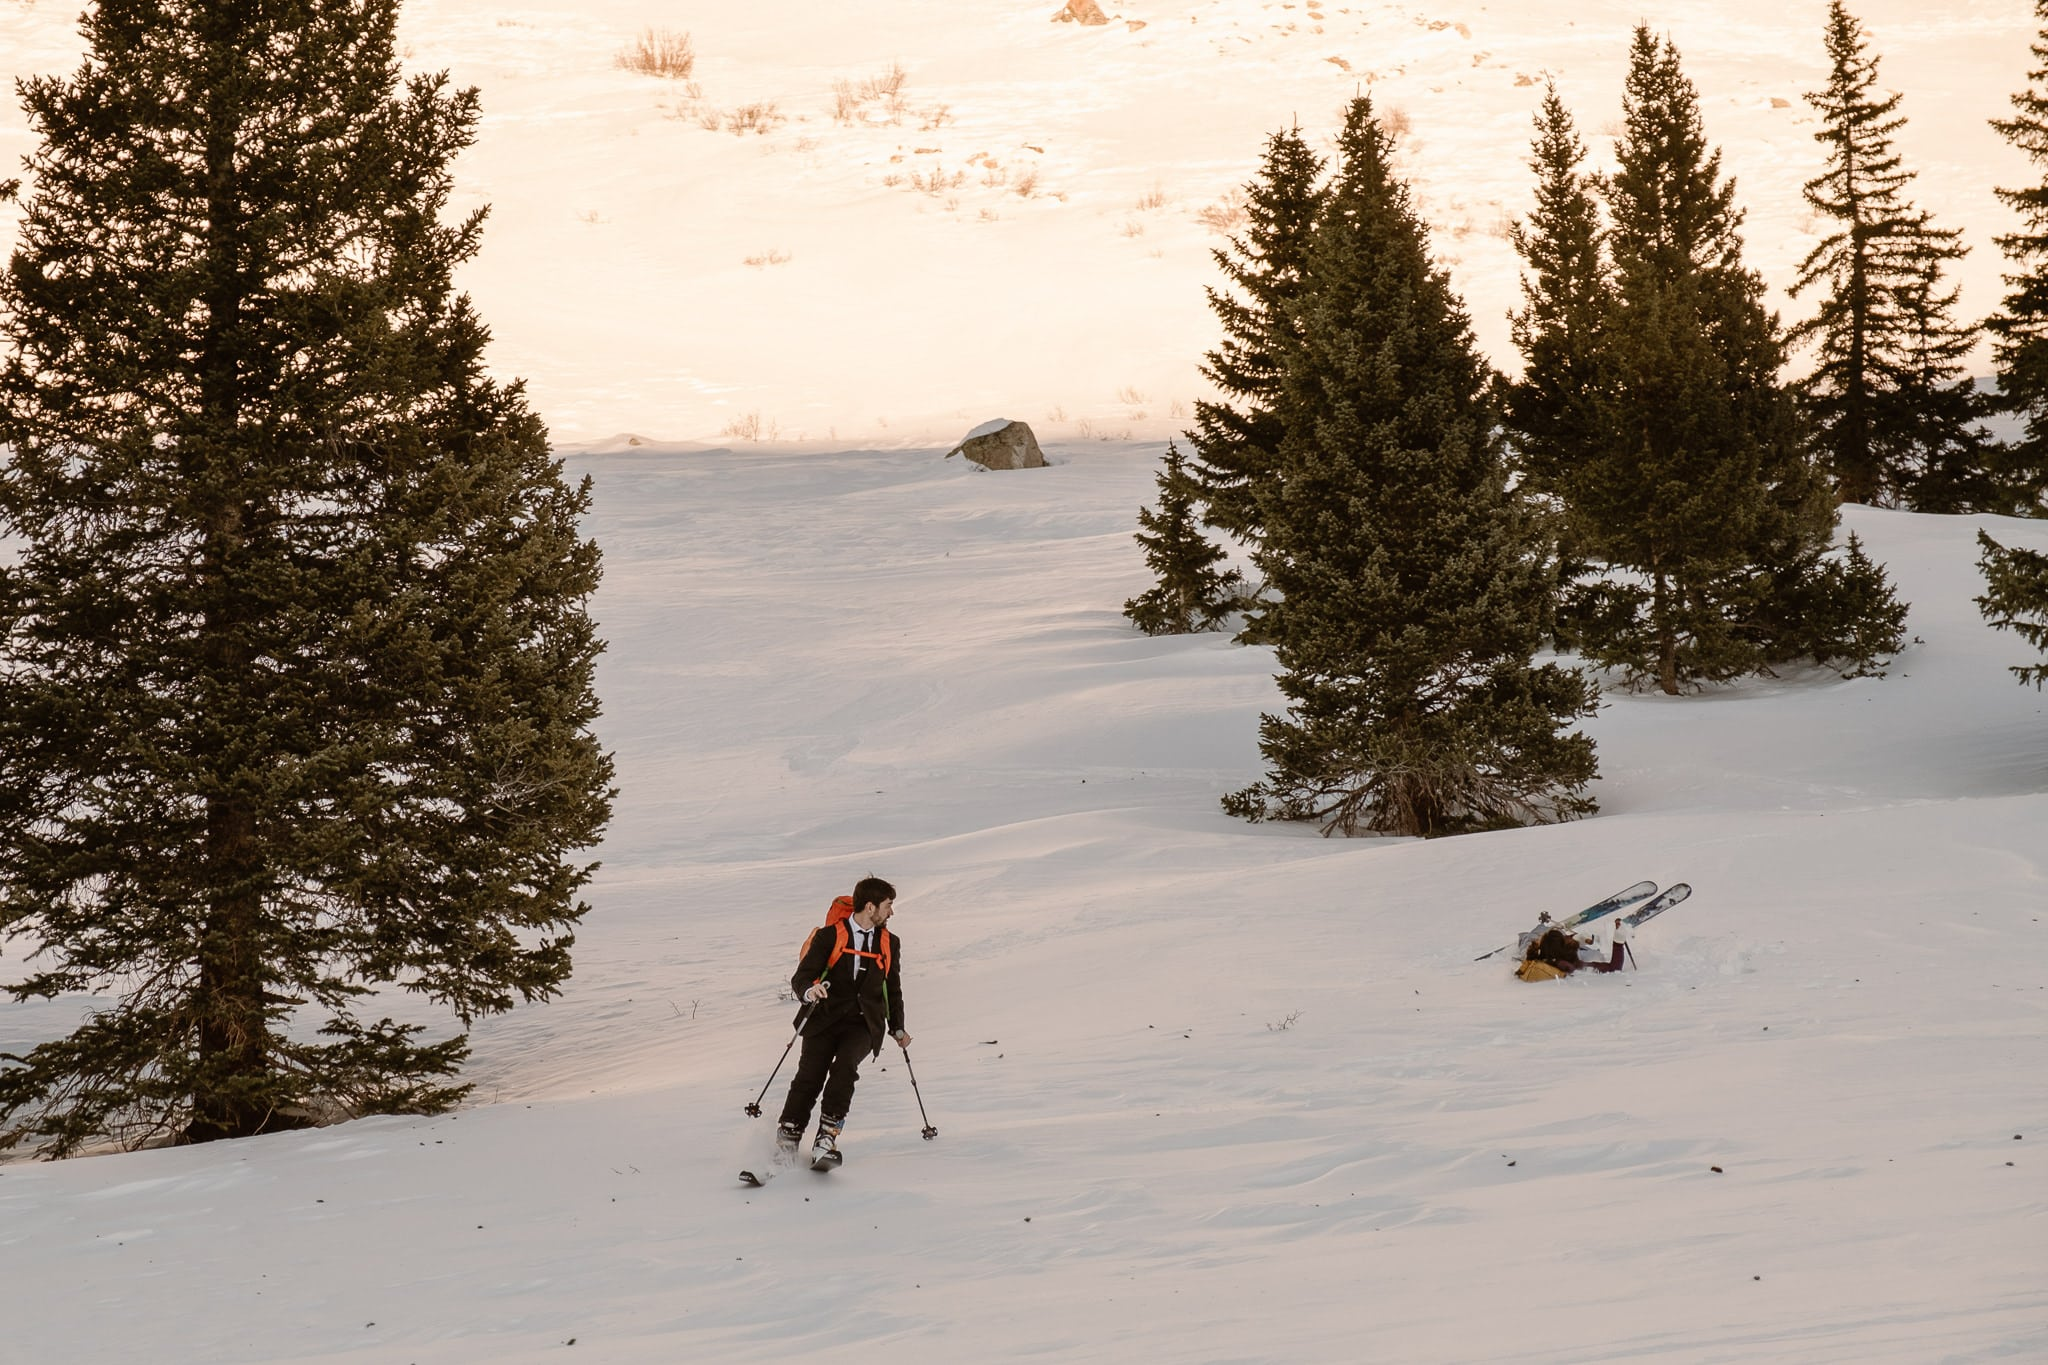 Bride and groom skiing in Colorado mountains, backcountry skiing elopement near Leadville, Mayflower Gulch elopement